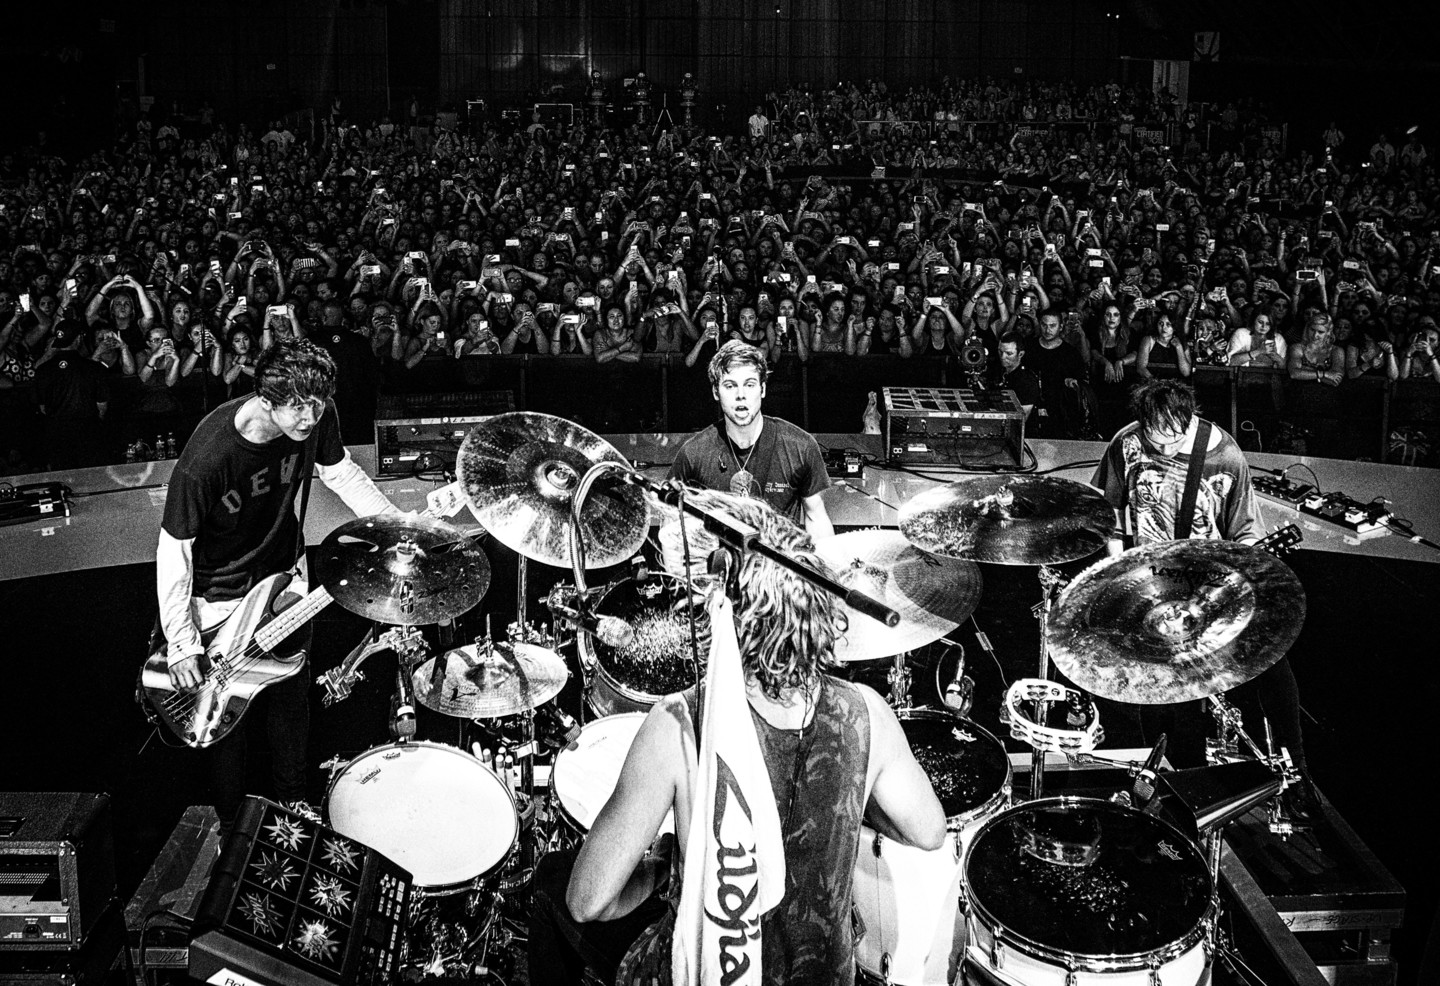 5SOS Sounds Live Feels Live Official North American Tour App